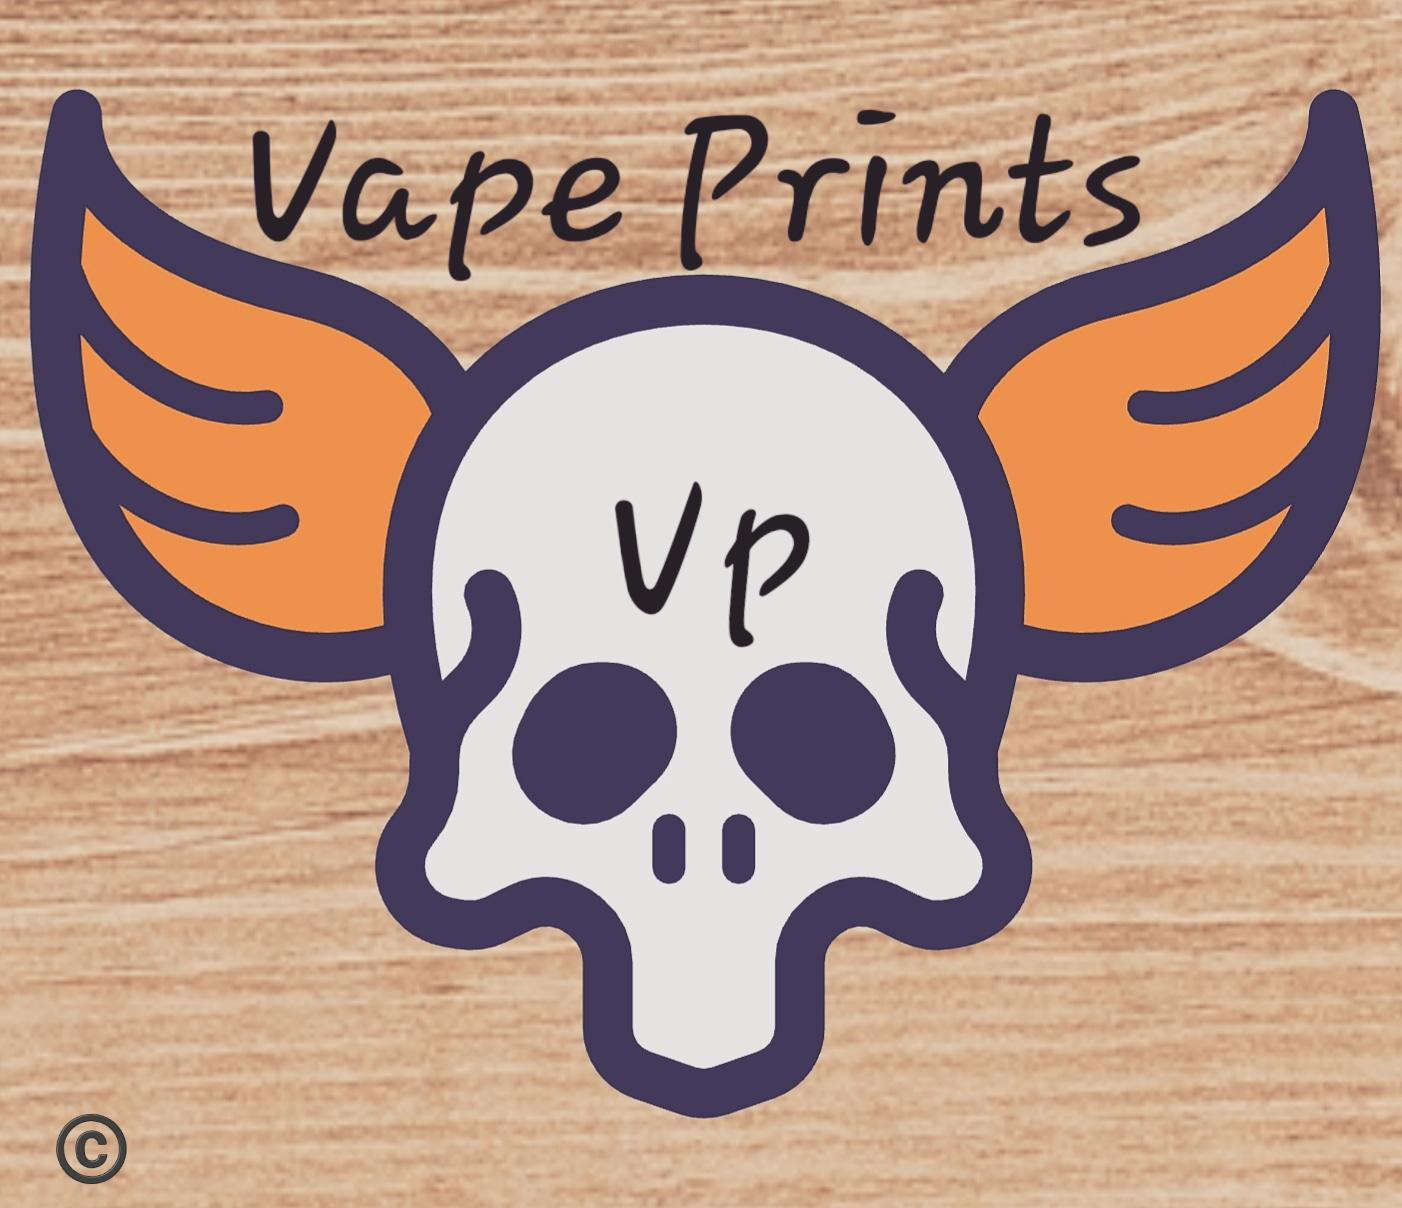 VP vape prints Logo